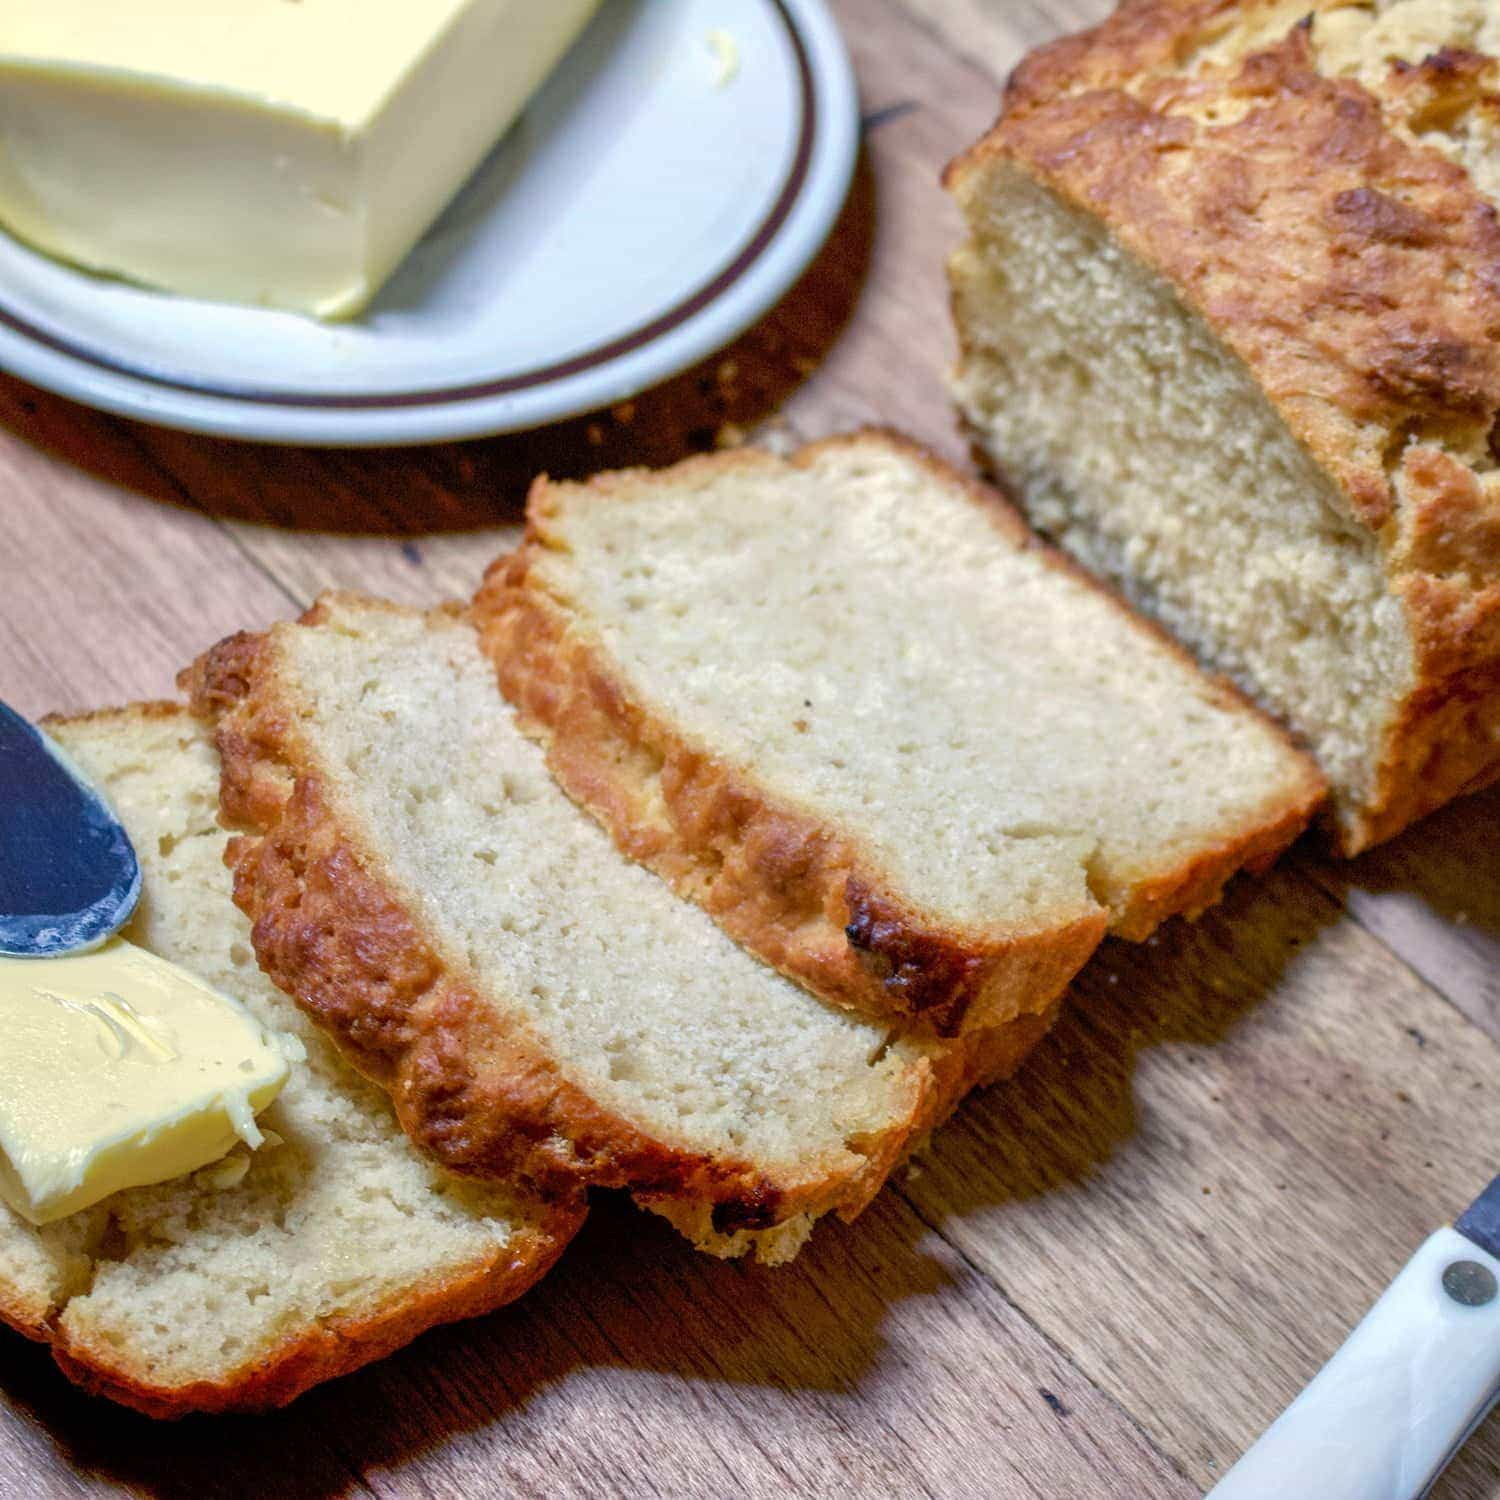 This is a quick and easy beer bread recipe perfect for the holidays and not only. The bread is soft and delicious with soups, stews or other favorites.